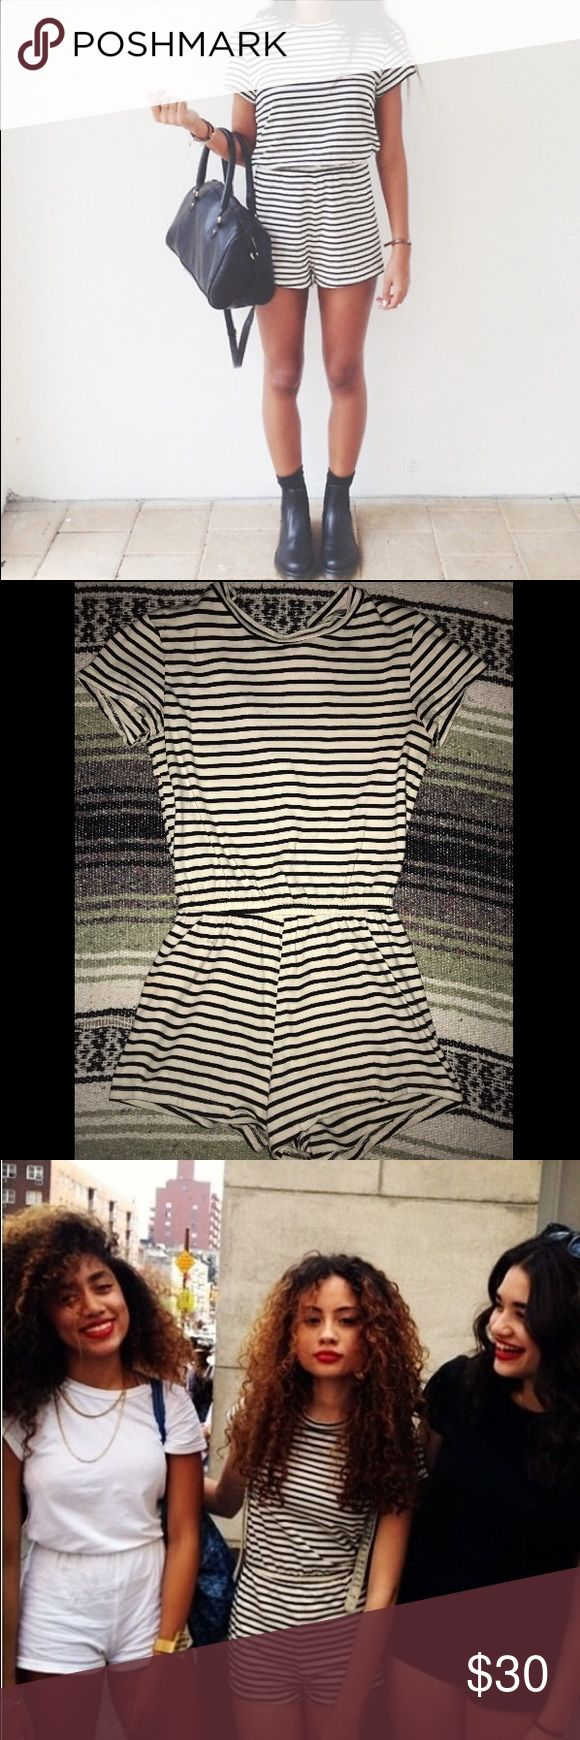 American Apparel Striped T-shirt Romper Worn once, American Apparel black and white striped t shirt romper. Super cute and casual for summer. As seen on Kylie Jenner. American Apparel Other